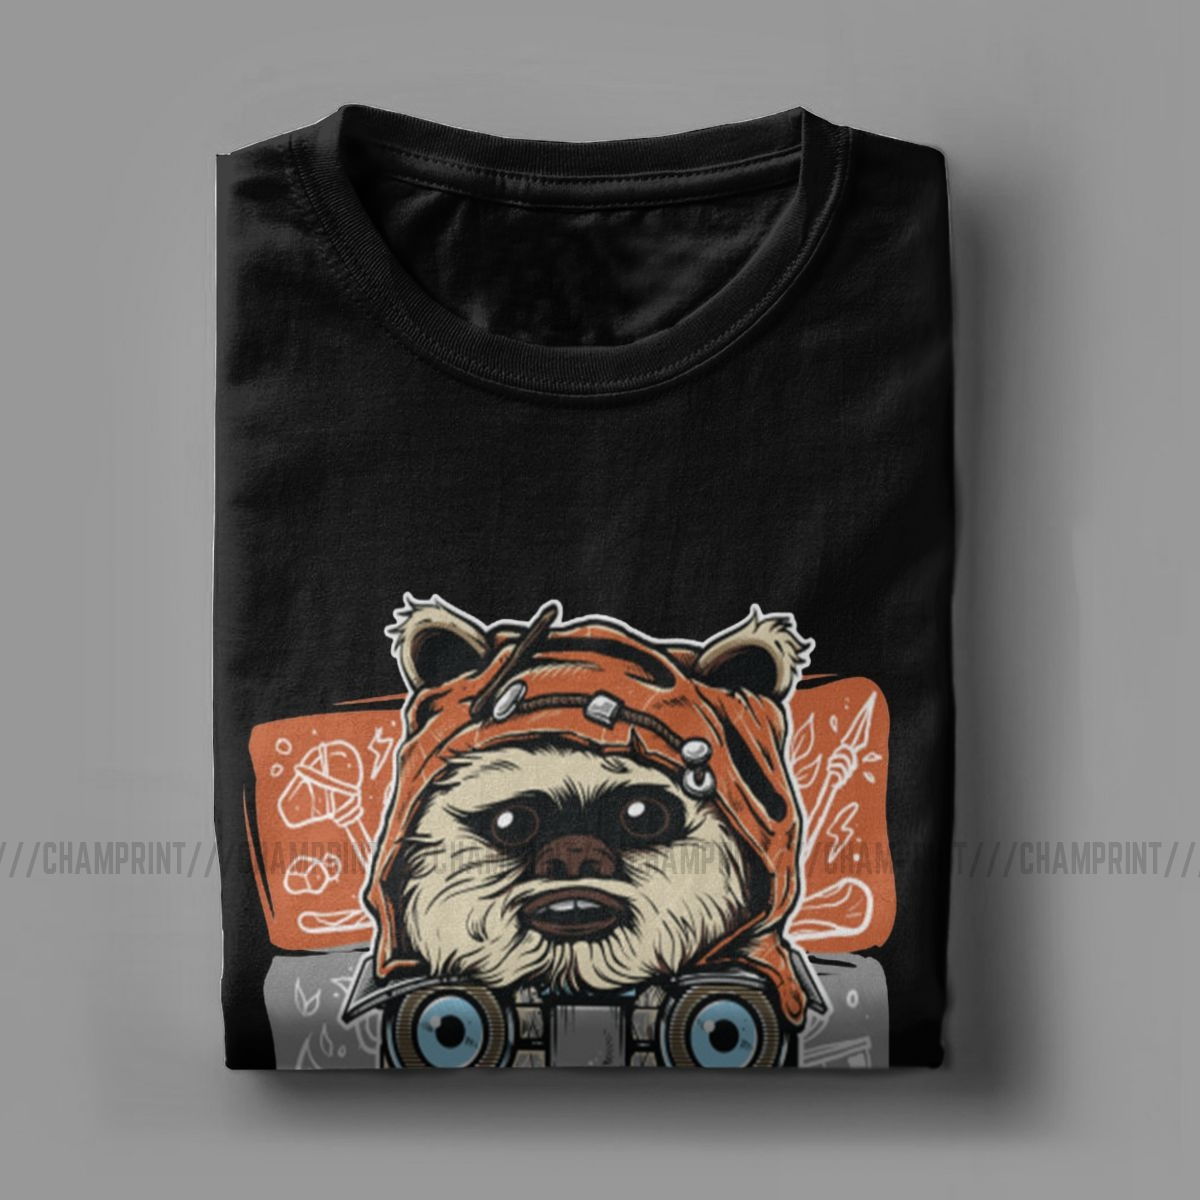 Novelty 80s Horror Christmas Movie Lcon T-Shirt Men Cotton T Shirts Gremlins Gizmo Monster Gremlin Tee Shirt Plus Size Clothing